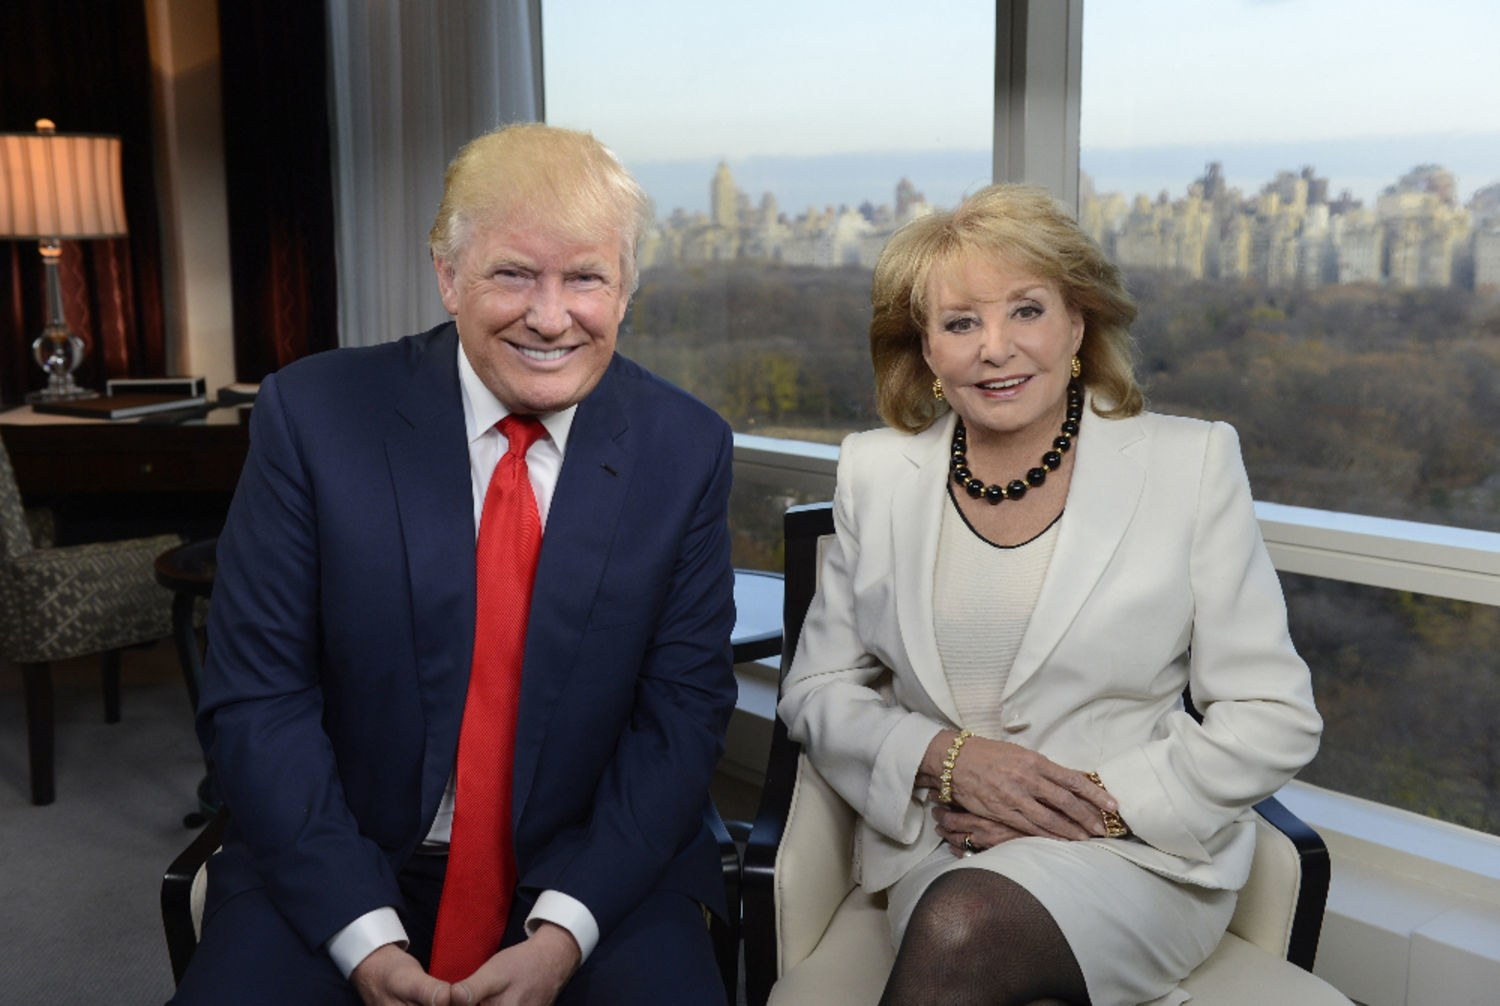 Presidential nominee Donald Trump and ABC News journalist Barbara Walters smiling for the picture in 2015 November.